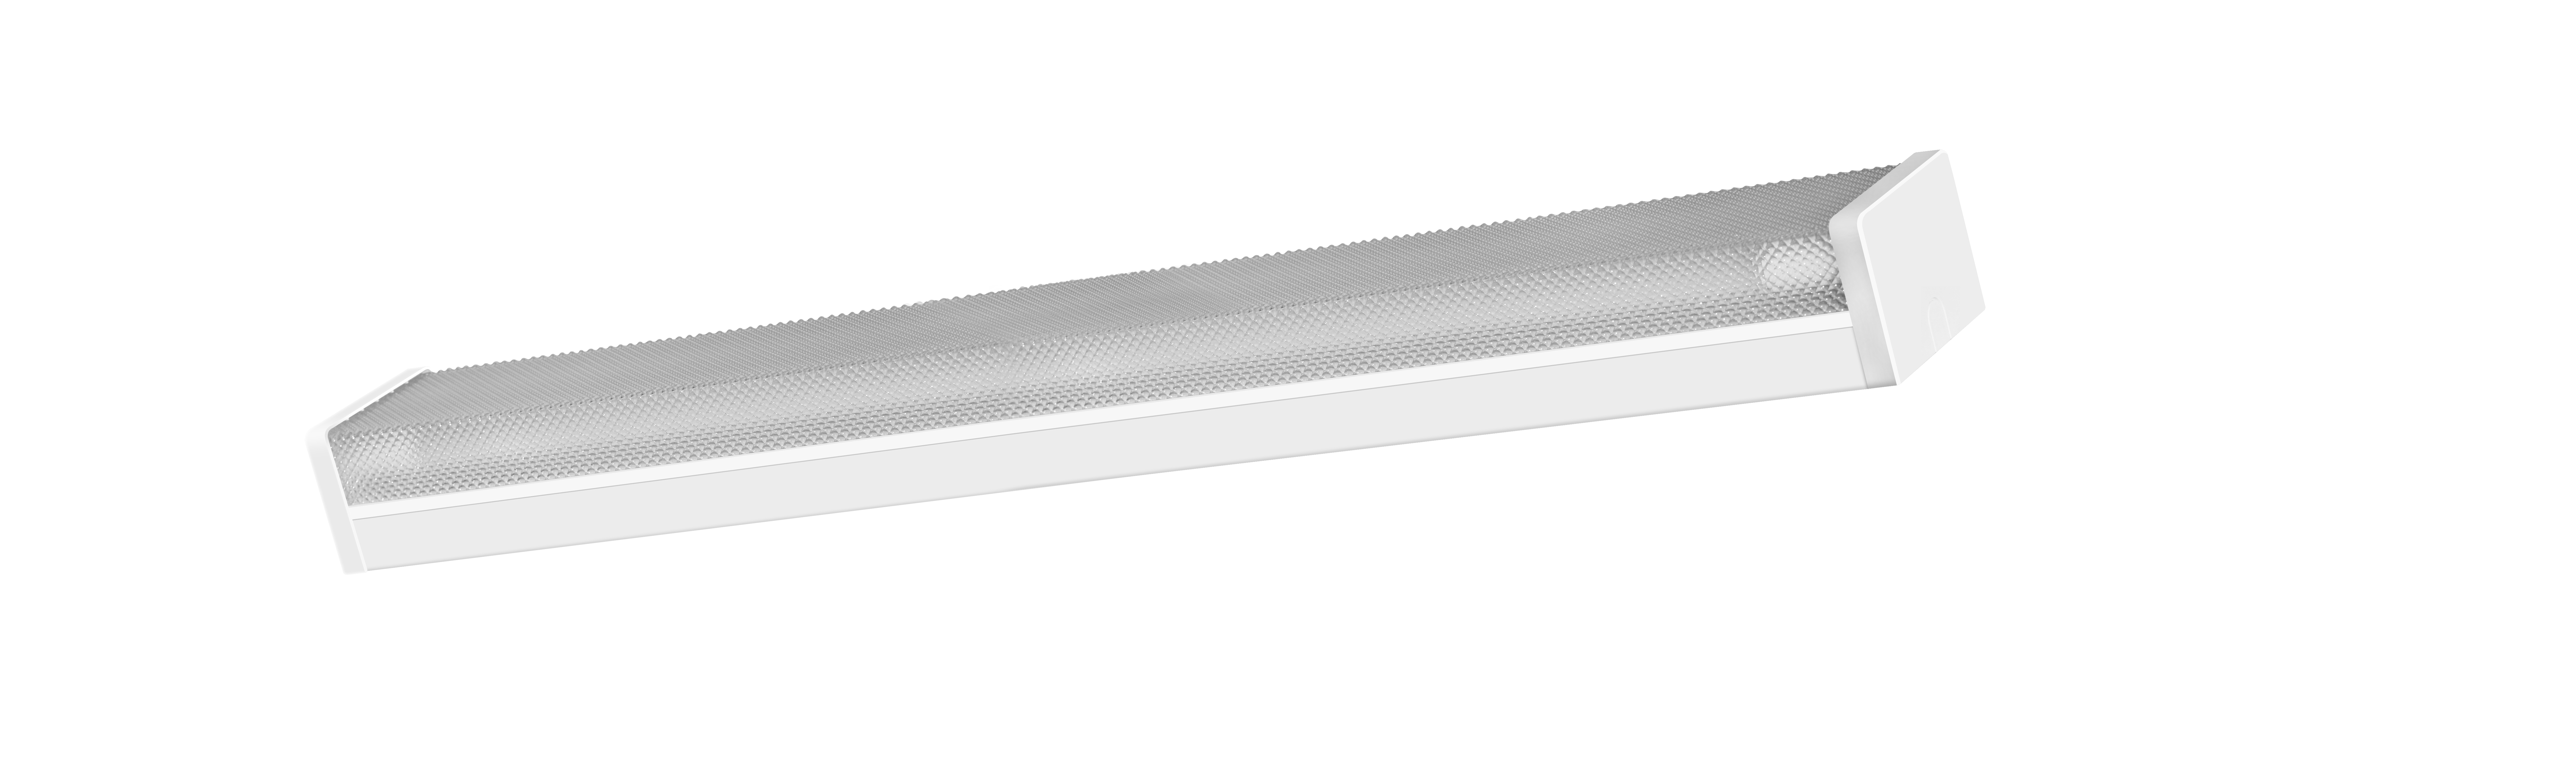 Prime Batten With LED Tubes (IP20, Diffused)